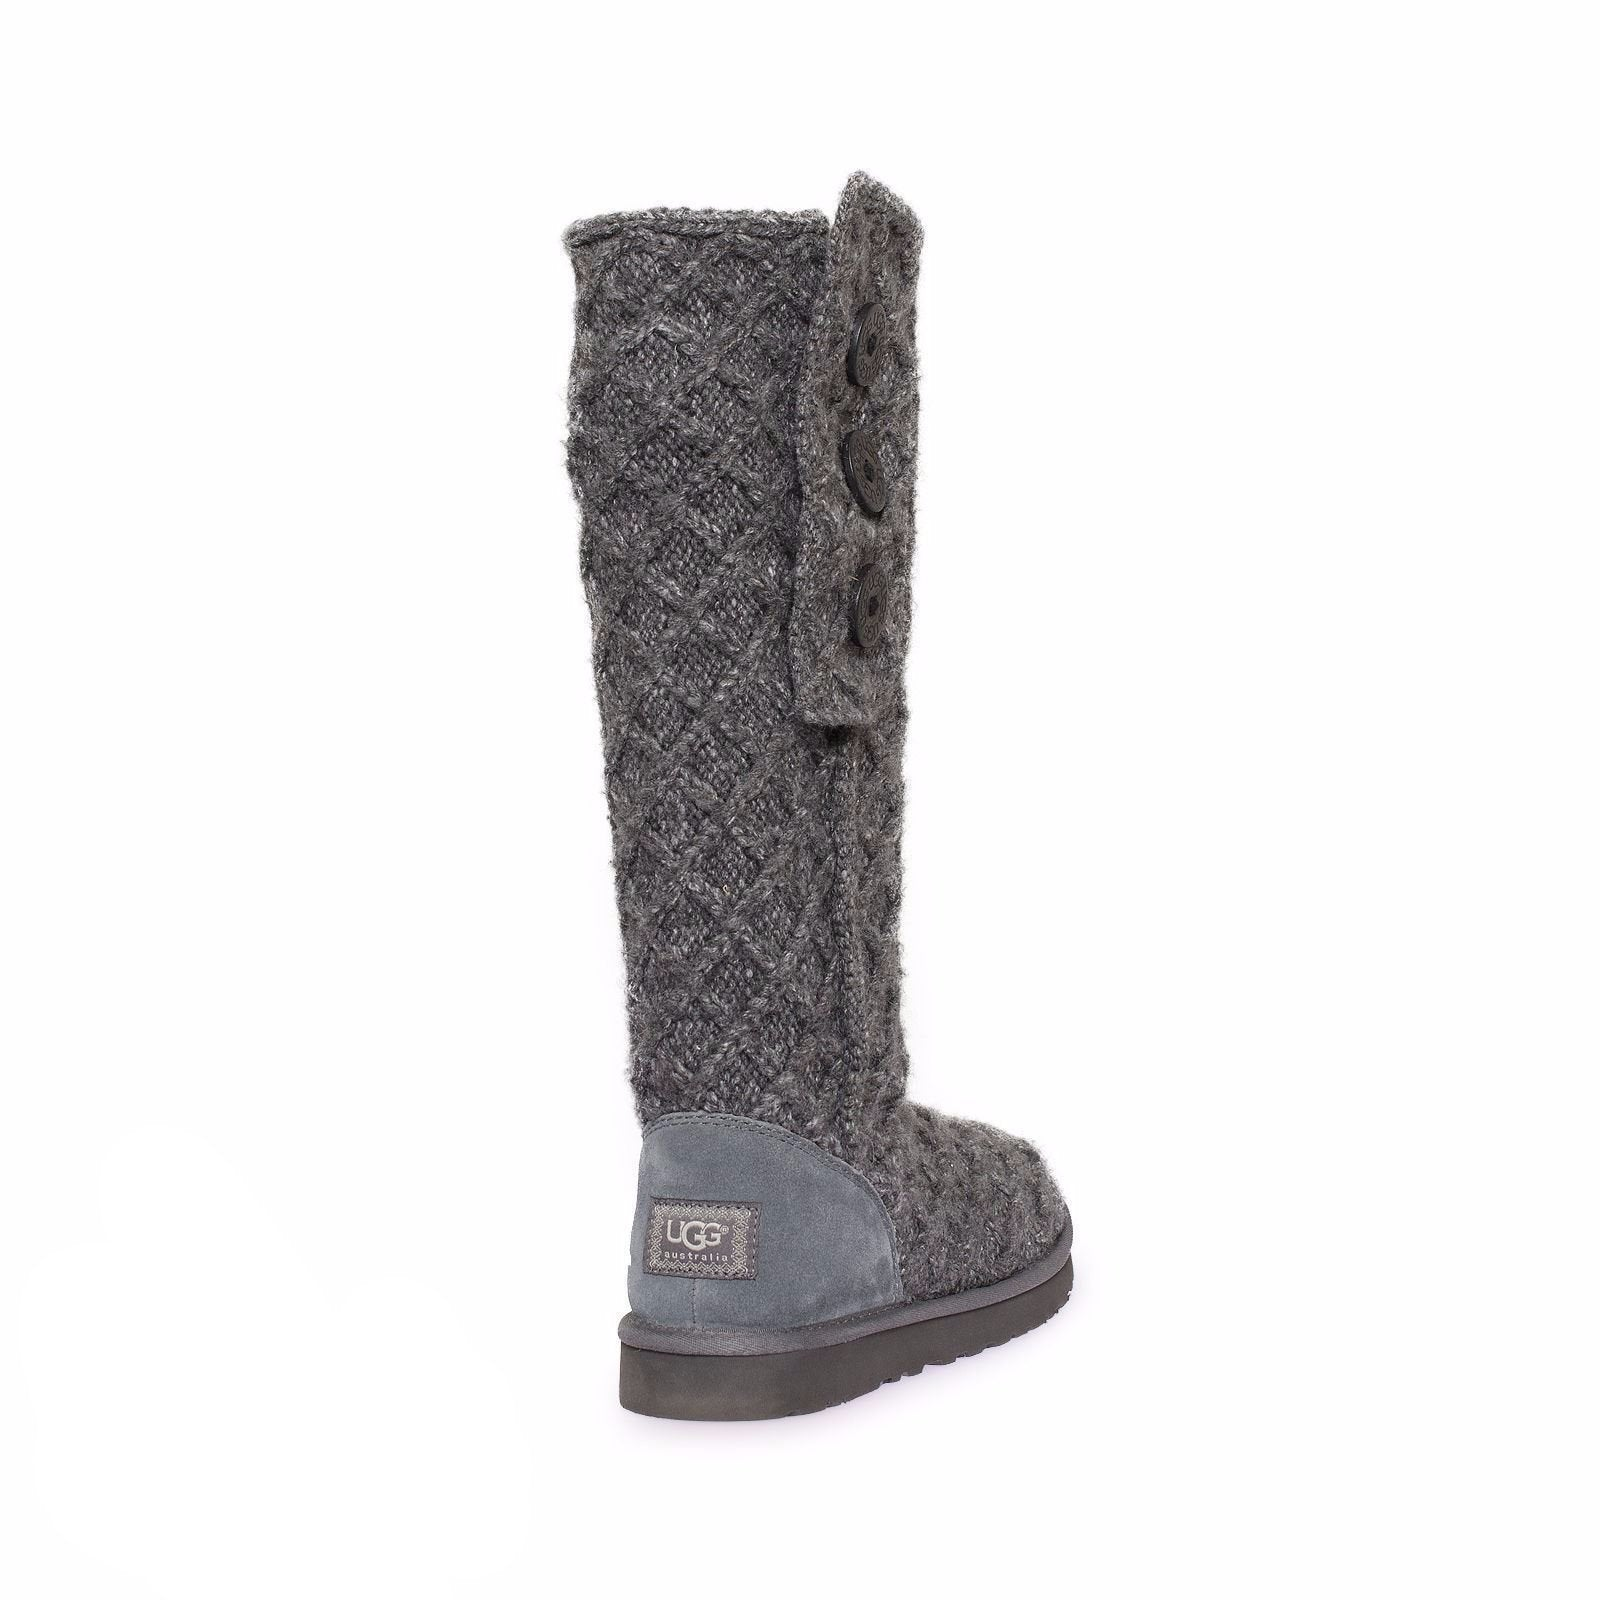 27db634845a UGG Lattice Cardy Charcoal Boots